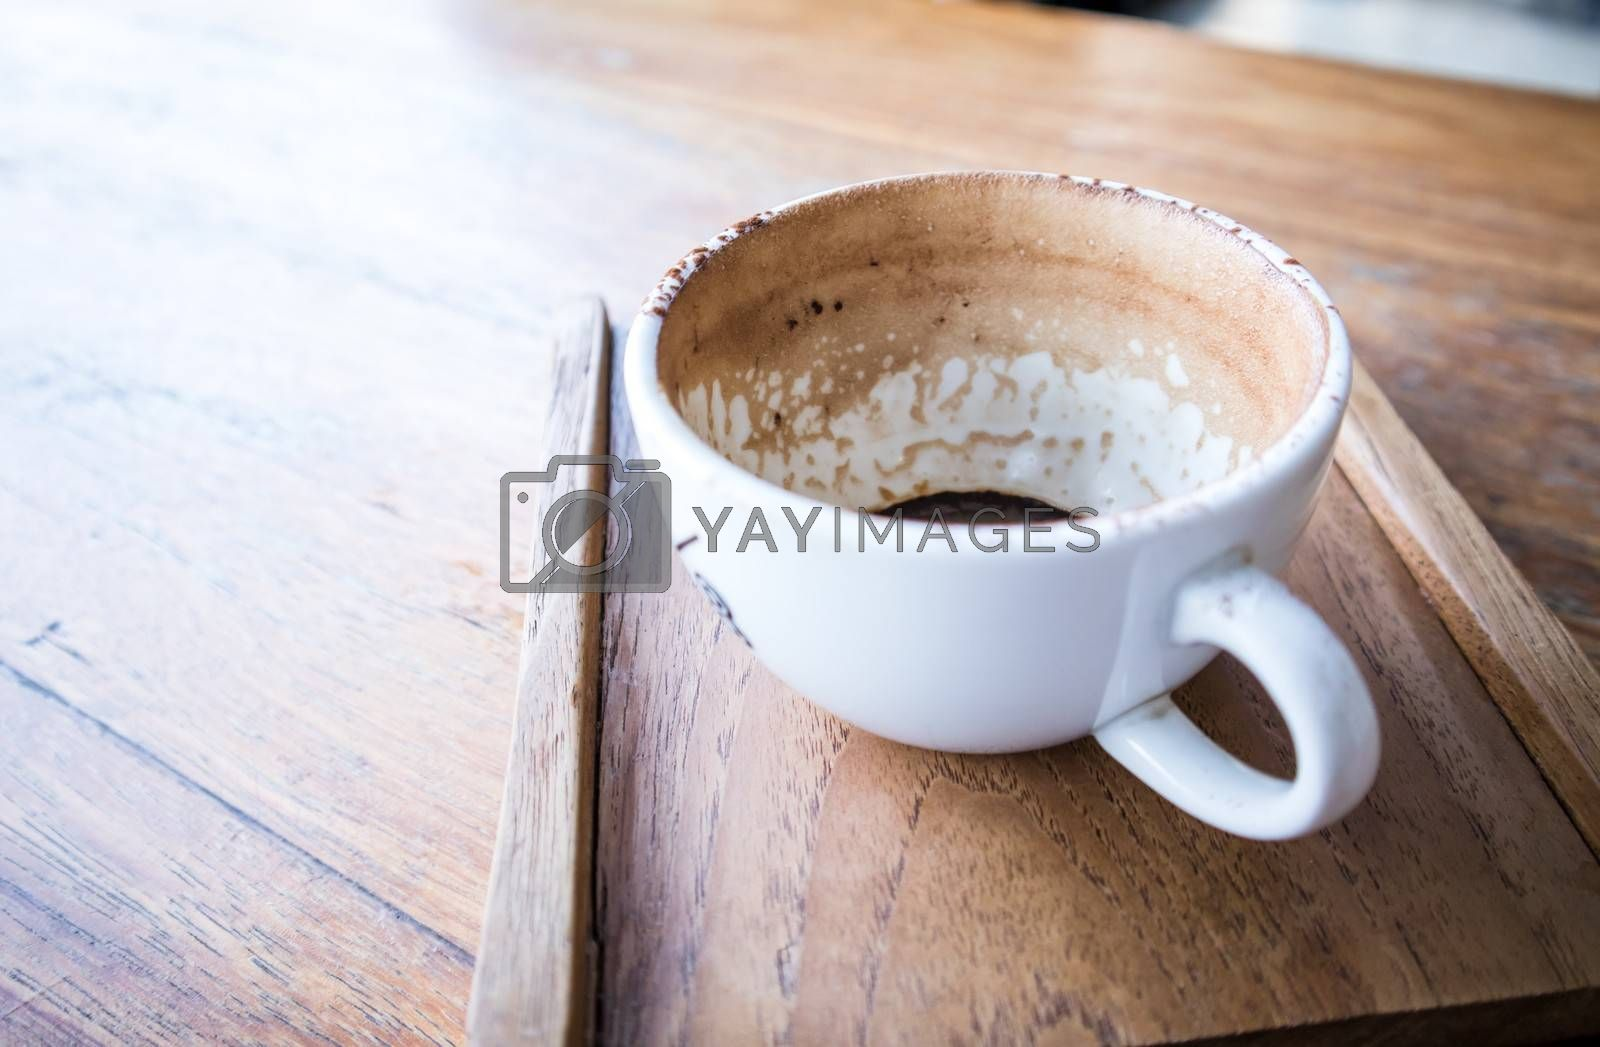 Finished Empty coffee cup on the wooden table with a wooden tray .close up view